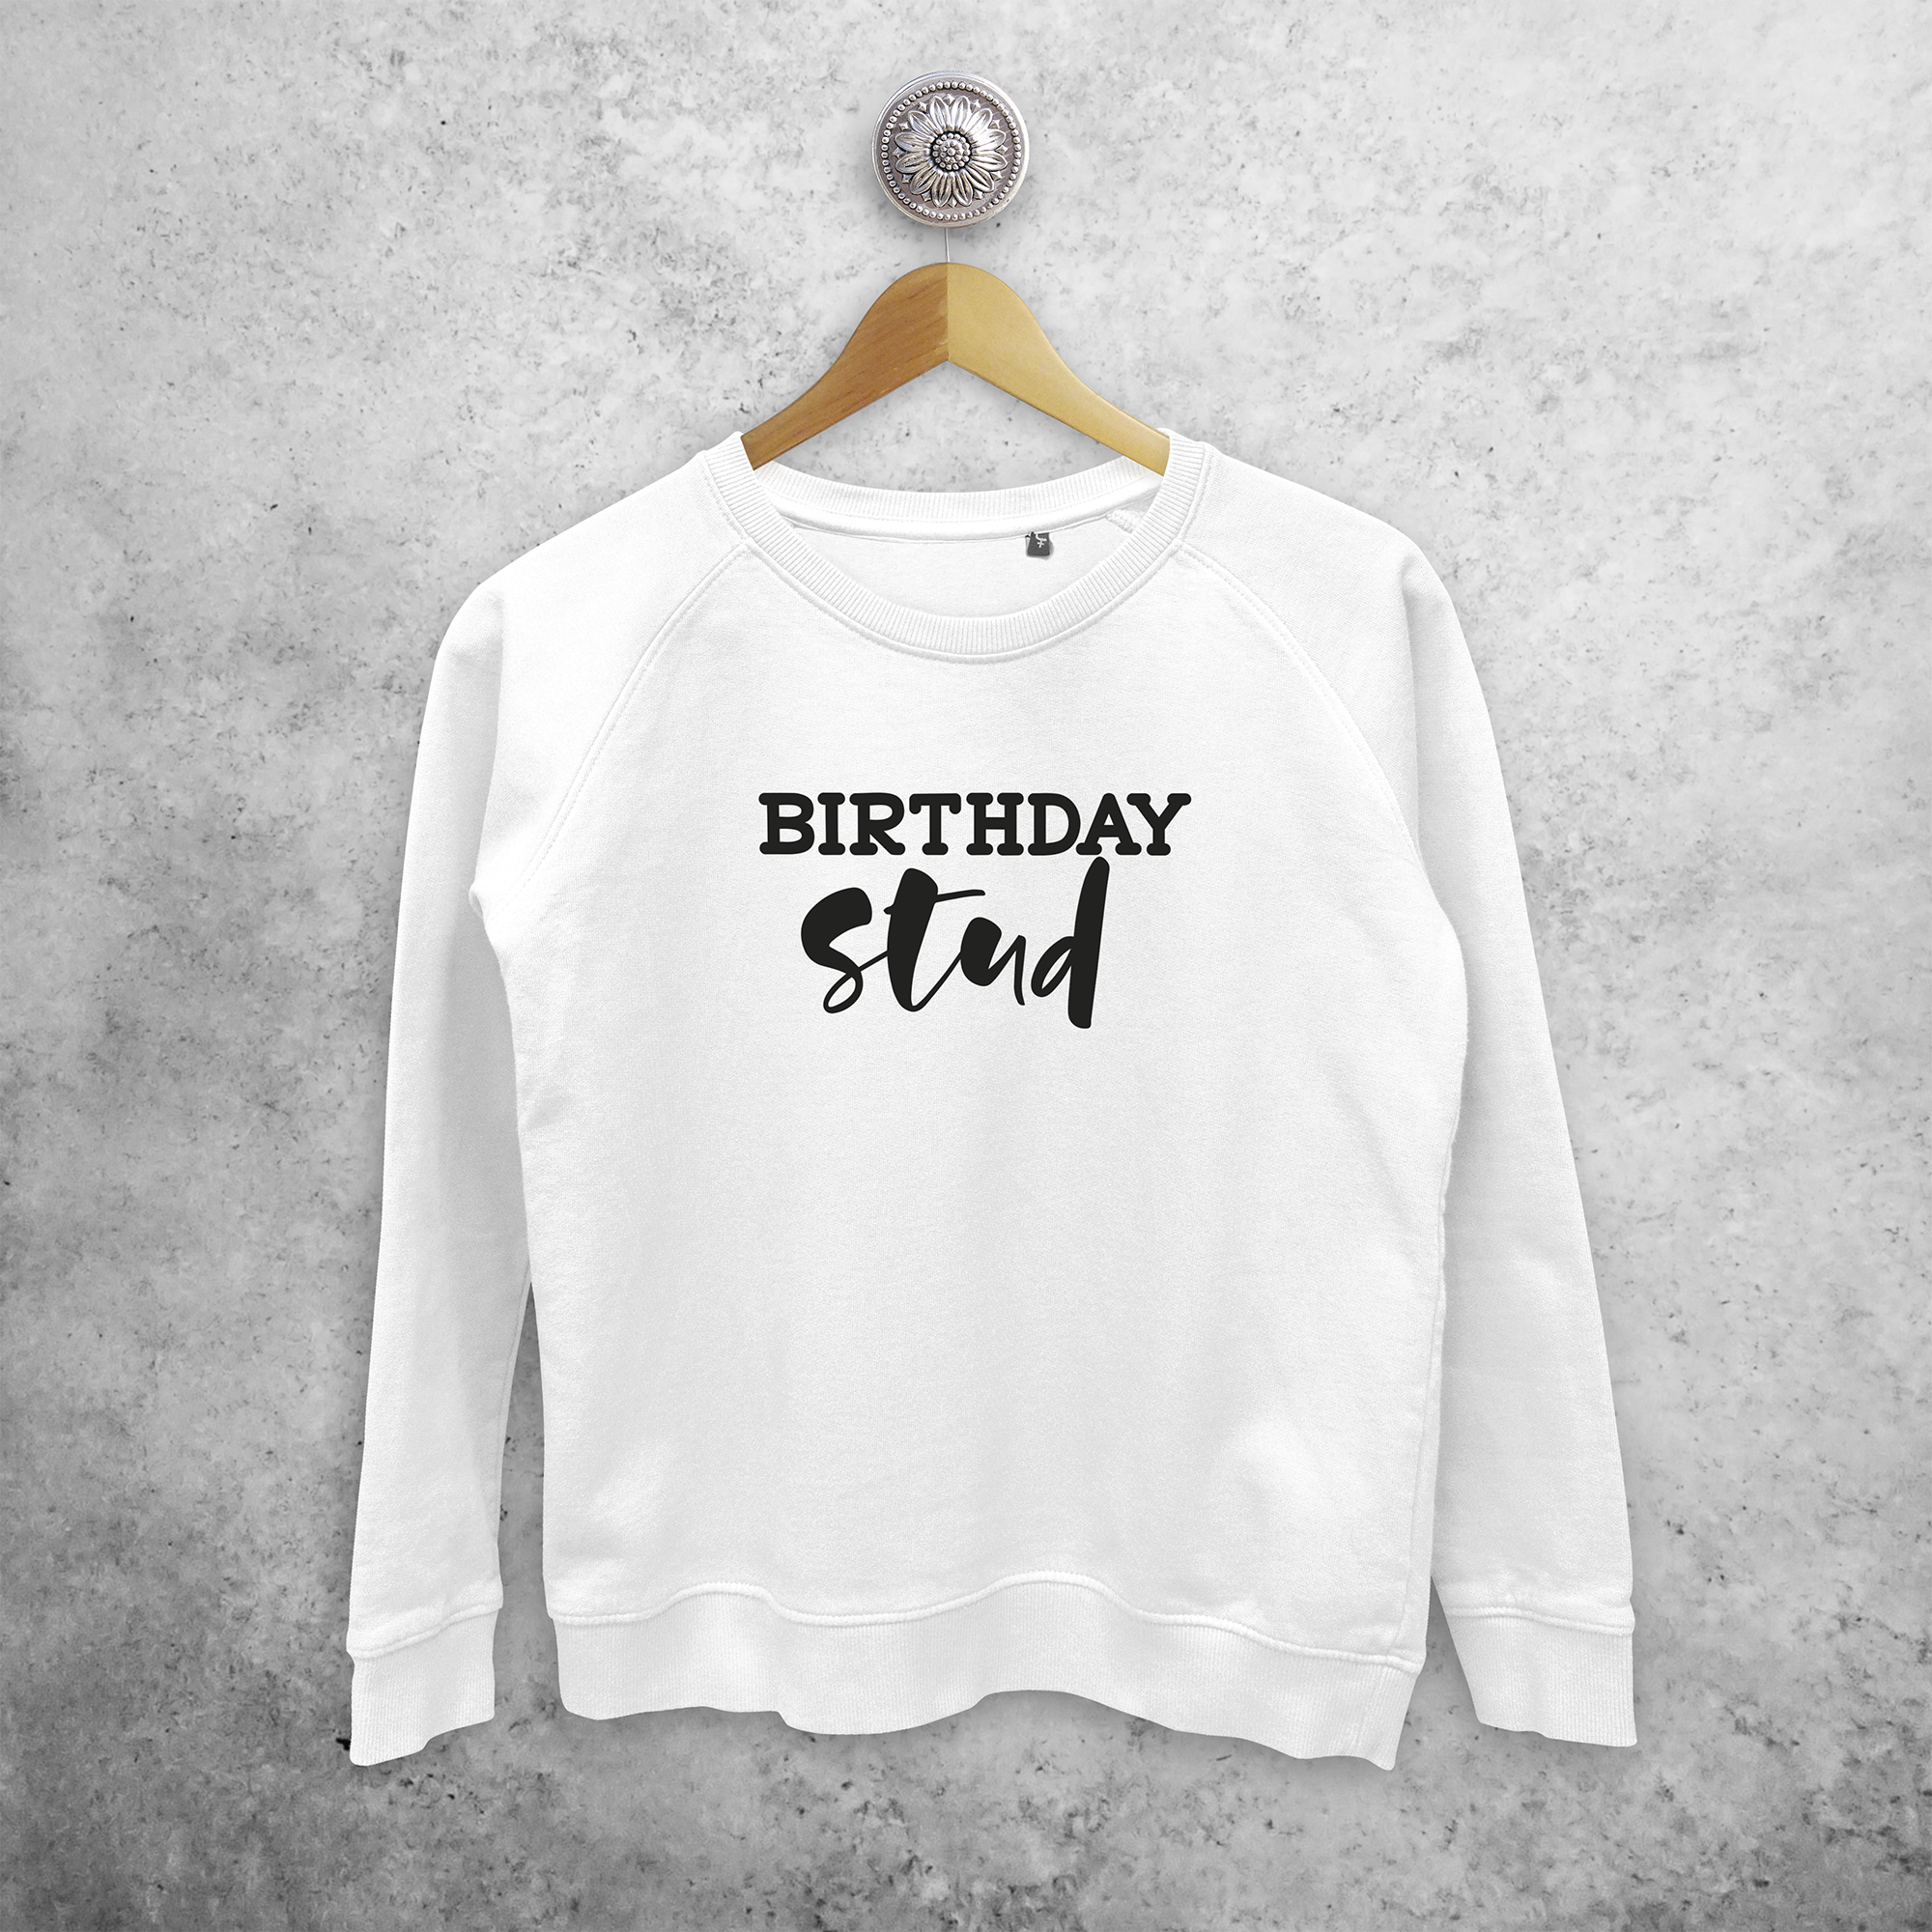 'Birthday stud' sweater